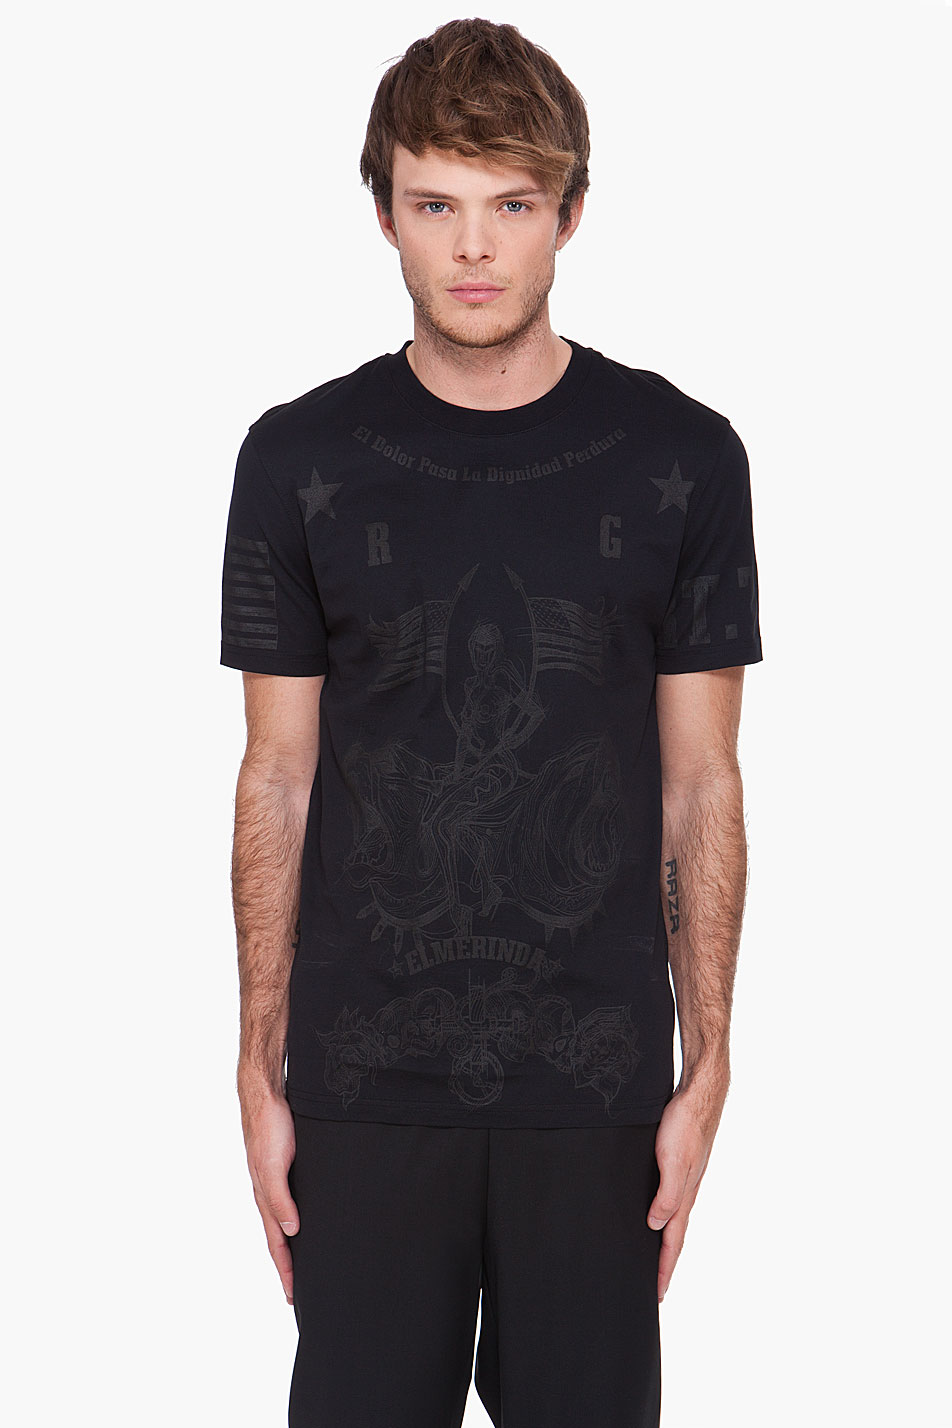 Givenchy Limited Edition Elmerinda T Shirt In Black For